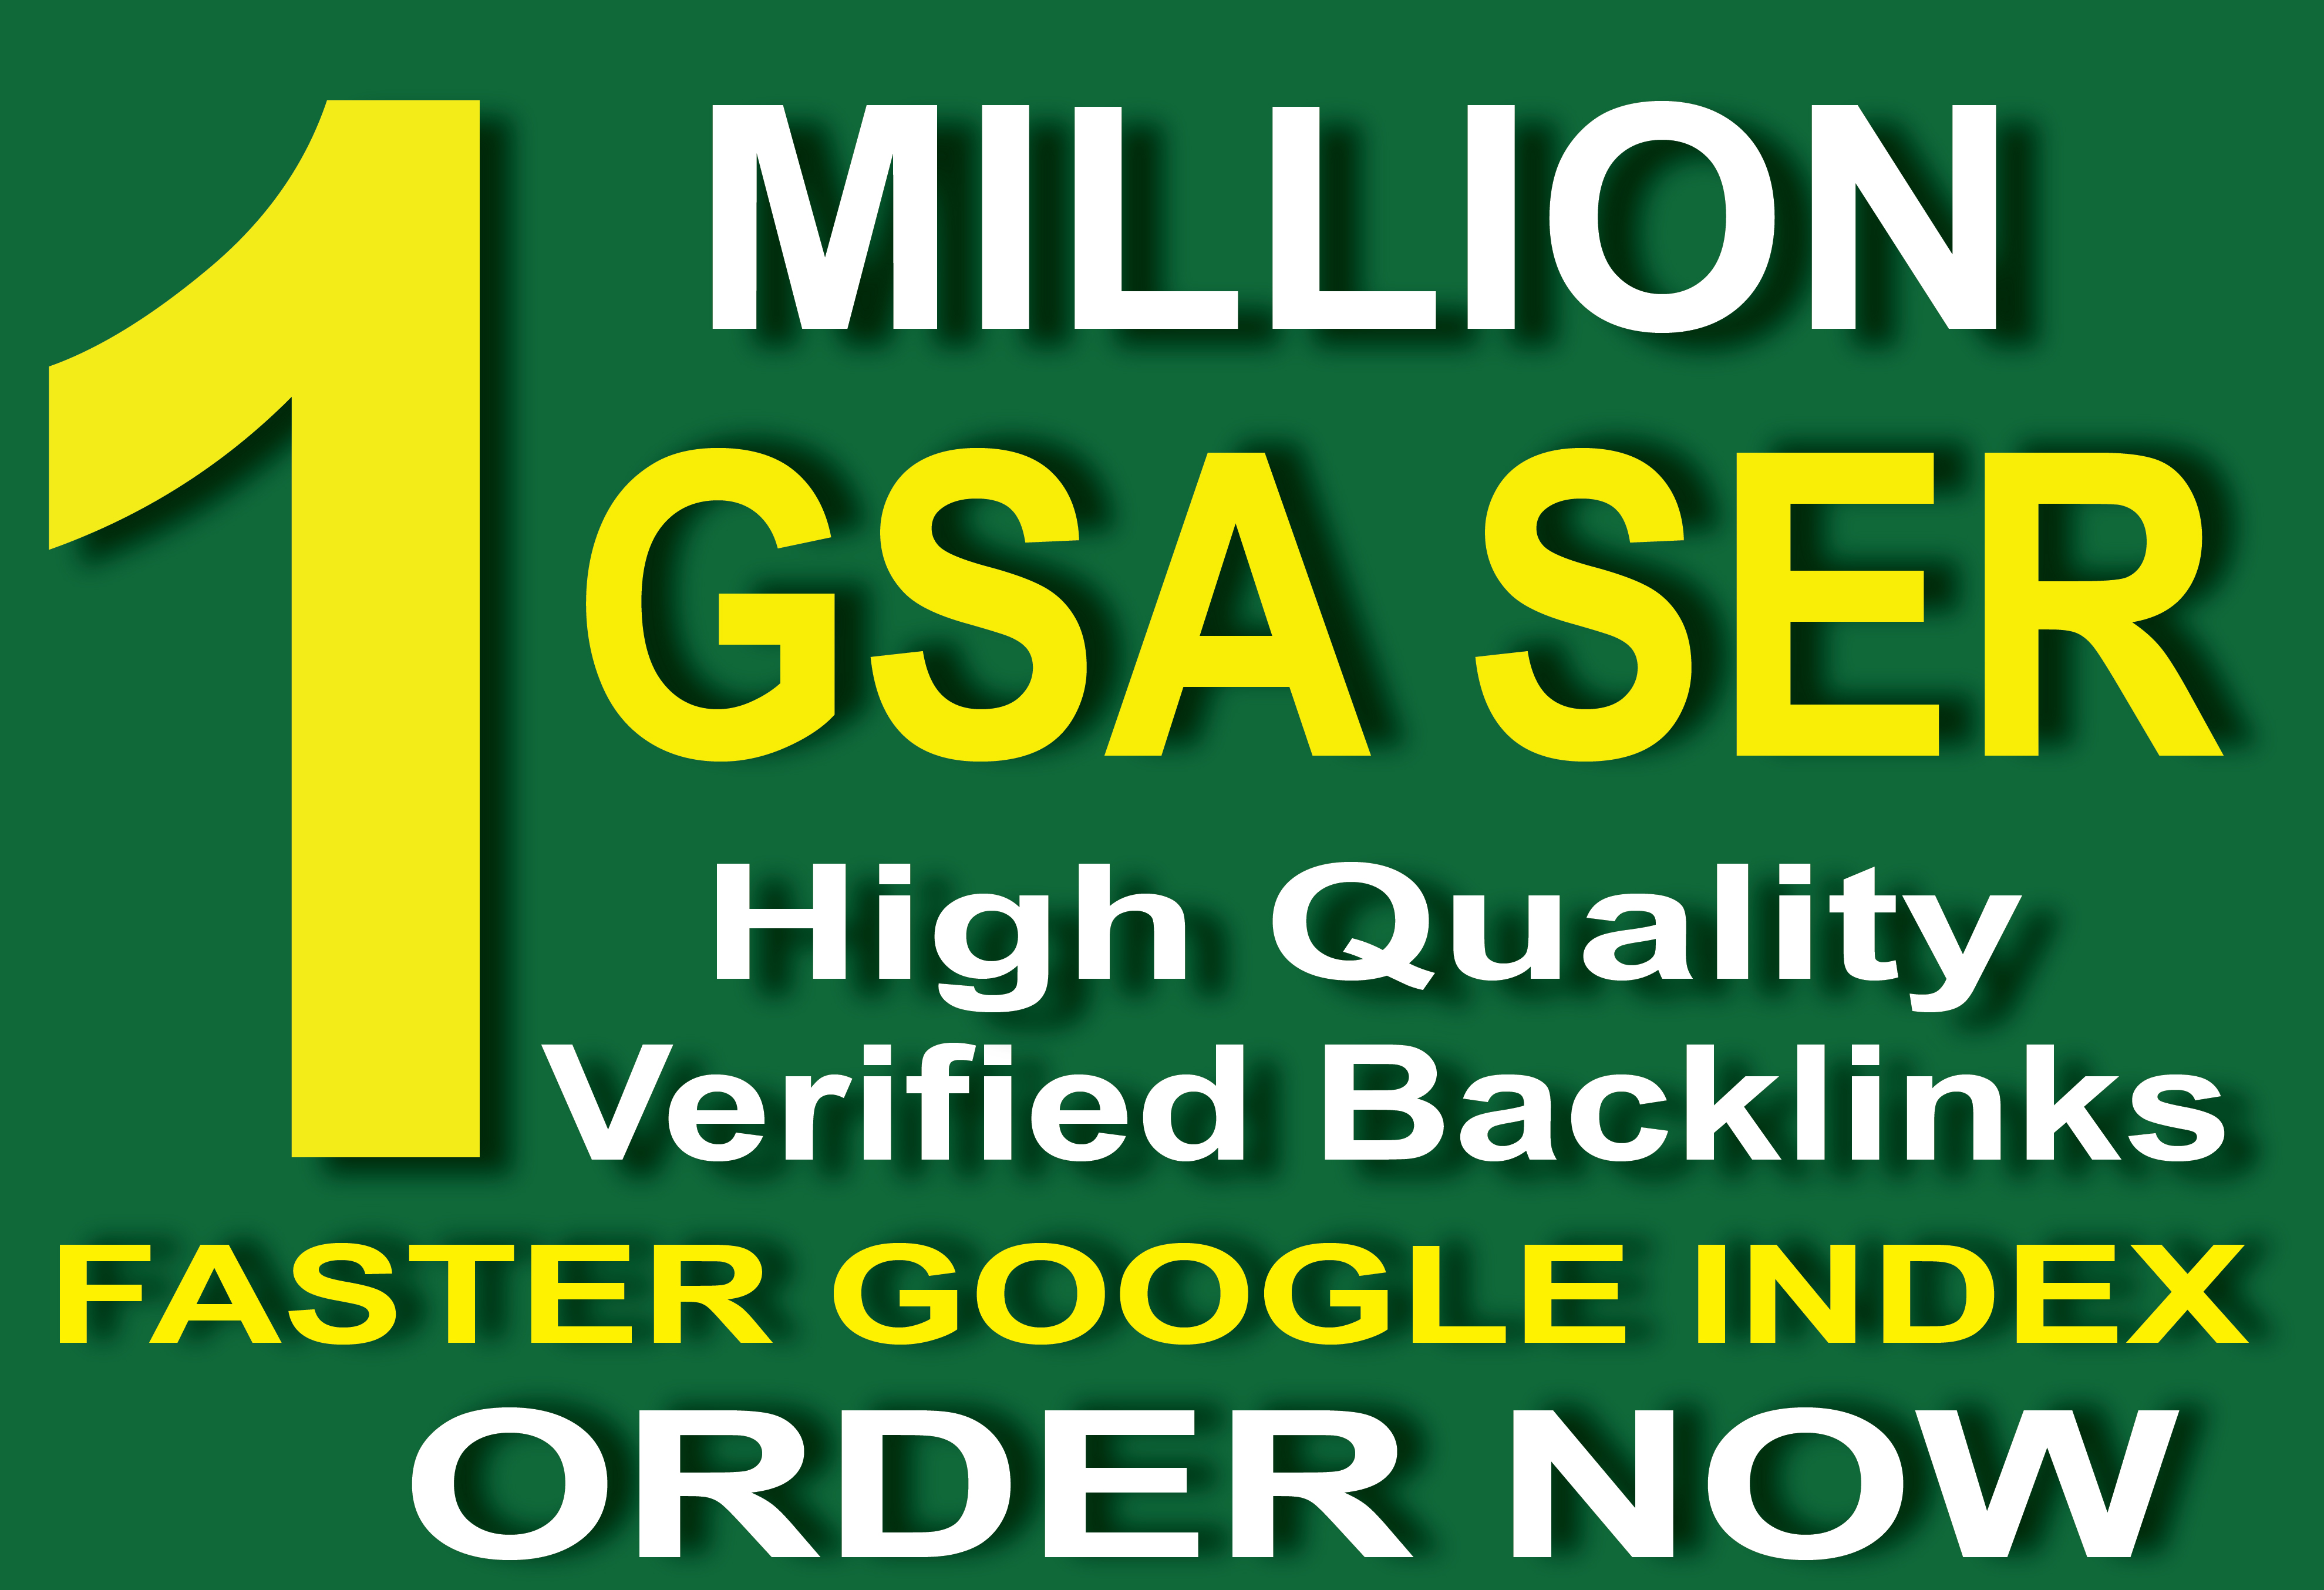 1 Million GSA SER Verified Backlinks For Faster Google Index and Ranking your site